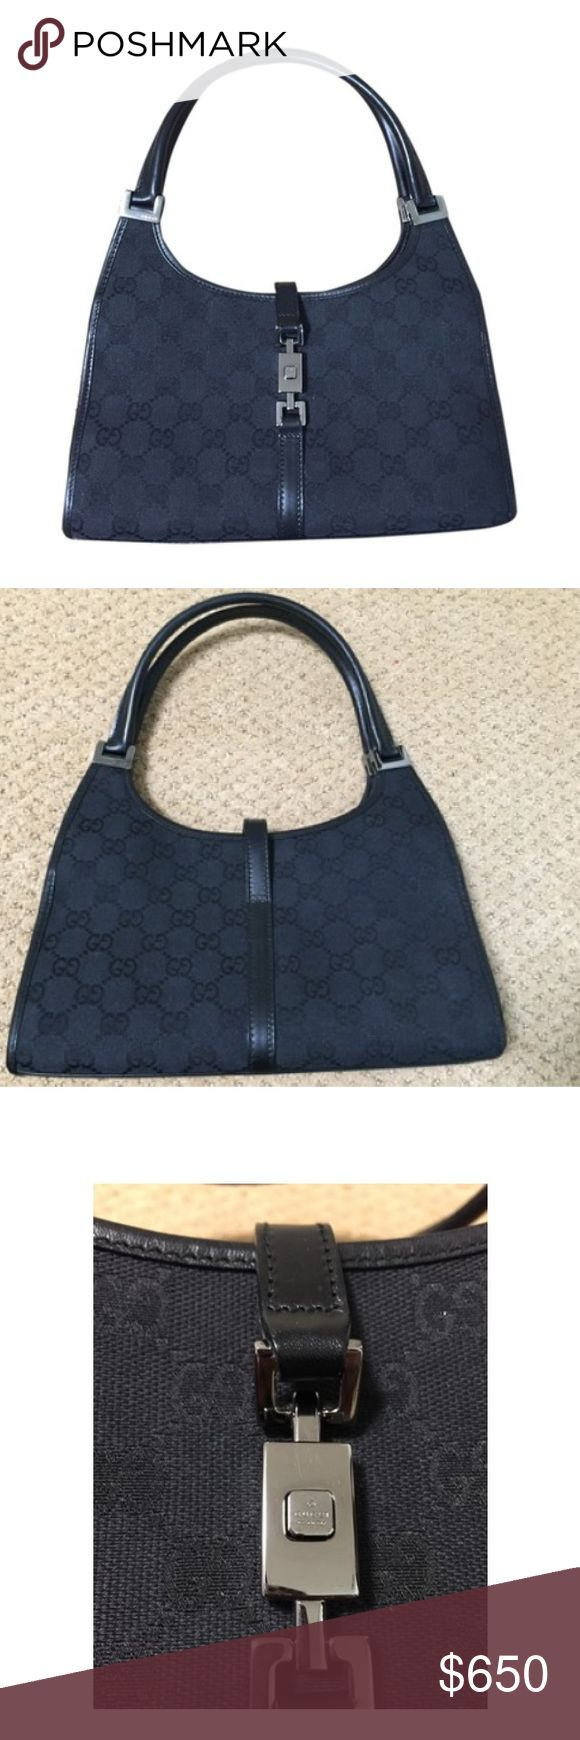 Gucci Bardot handbag (part 1 of 2) Black GG canvas Gucci Bardot bag with rolled top handles, leather trim, silver-tone hardware, interior zip pocket and front piston lock closure. Great condition as only used a few times. There is slight leather aging on the strip of leather along the back (see pic) otherwise looks like new. Made in Italy.  Size 10 x 2.5 x 6 inches.  See part 2 of 2 for more images. Ship priority mail. No tax Gucci Bags